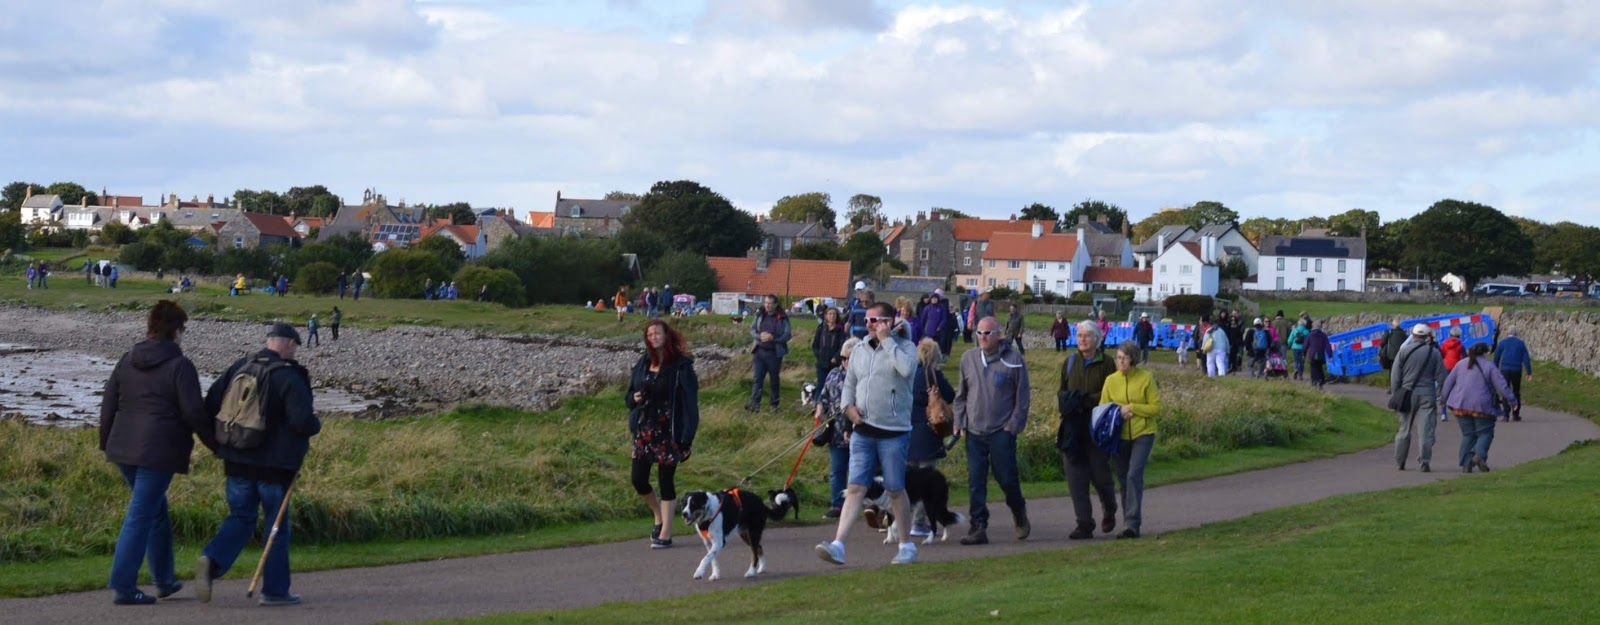 The Holy Island of Lindisfarne, Northumberland - what to see and do during a half day visit - walk to lindisfarne castle